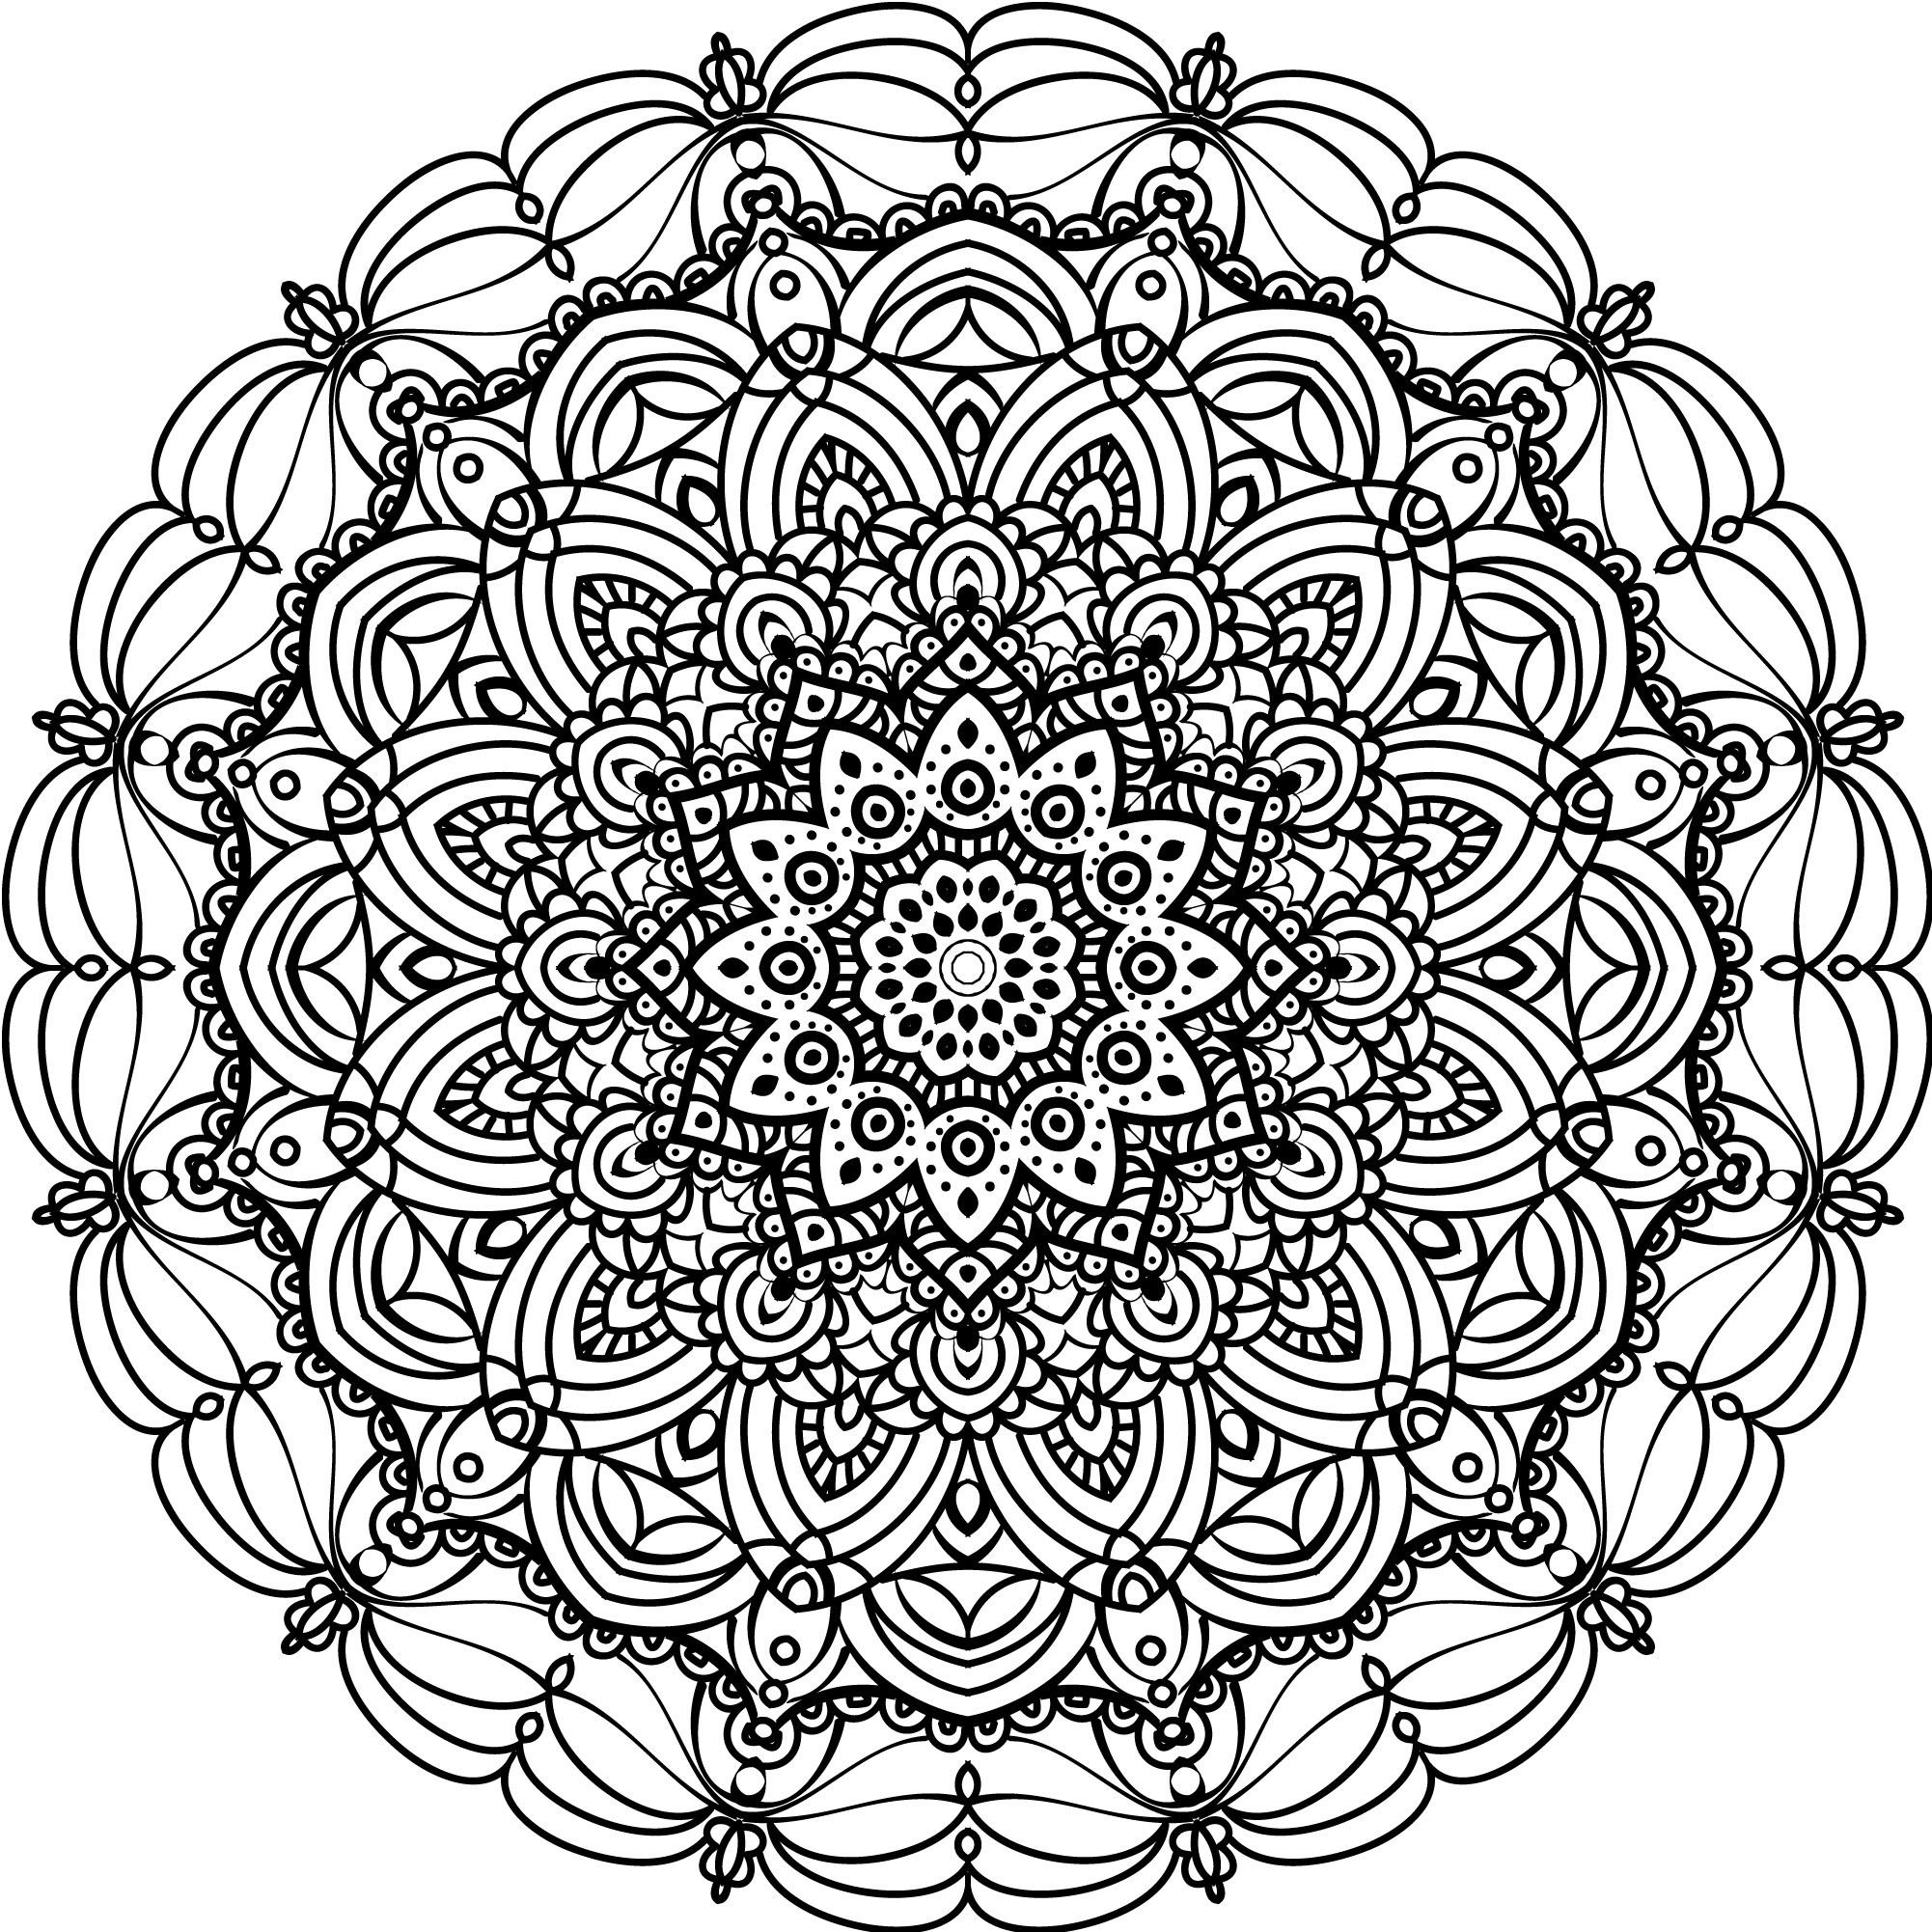 Mandala Pattern Created On Illustrator I Just Learned How To Draw